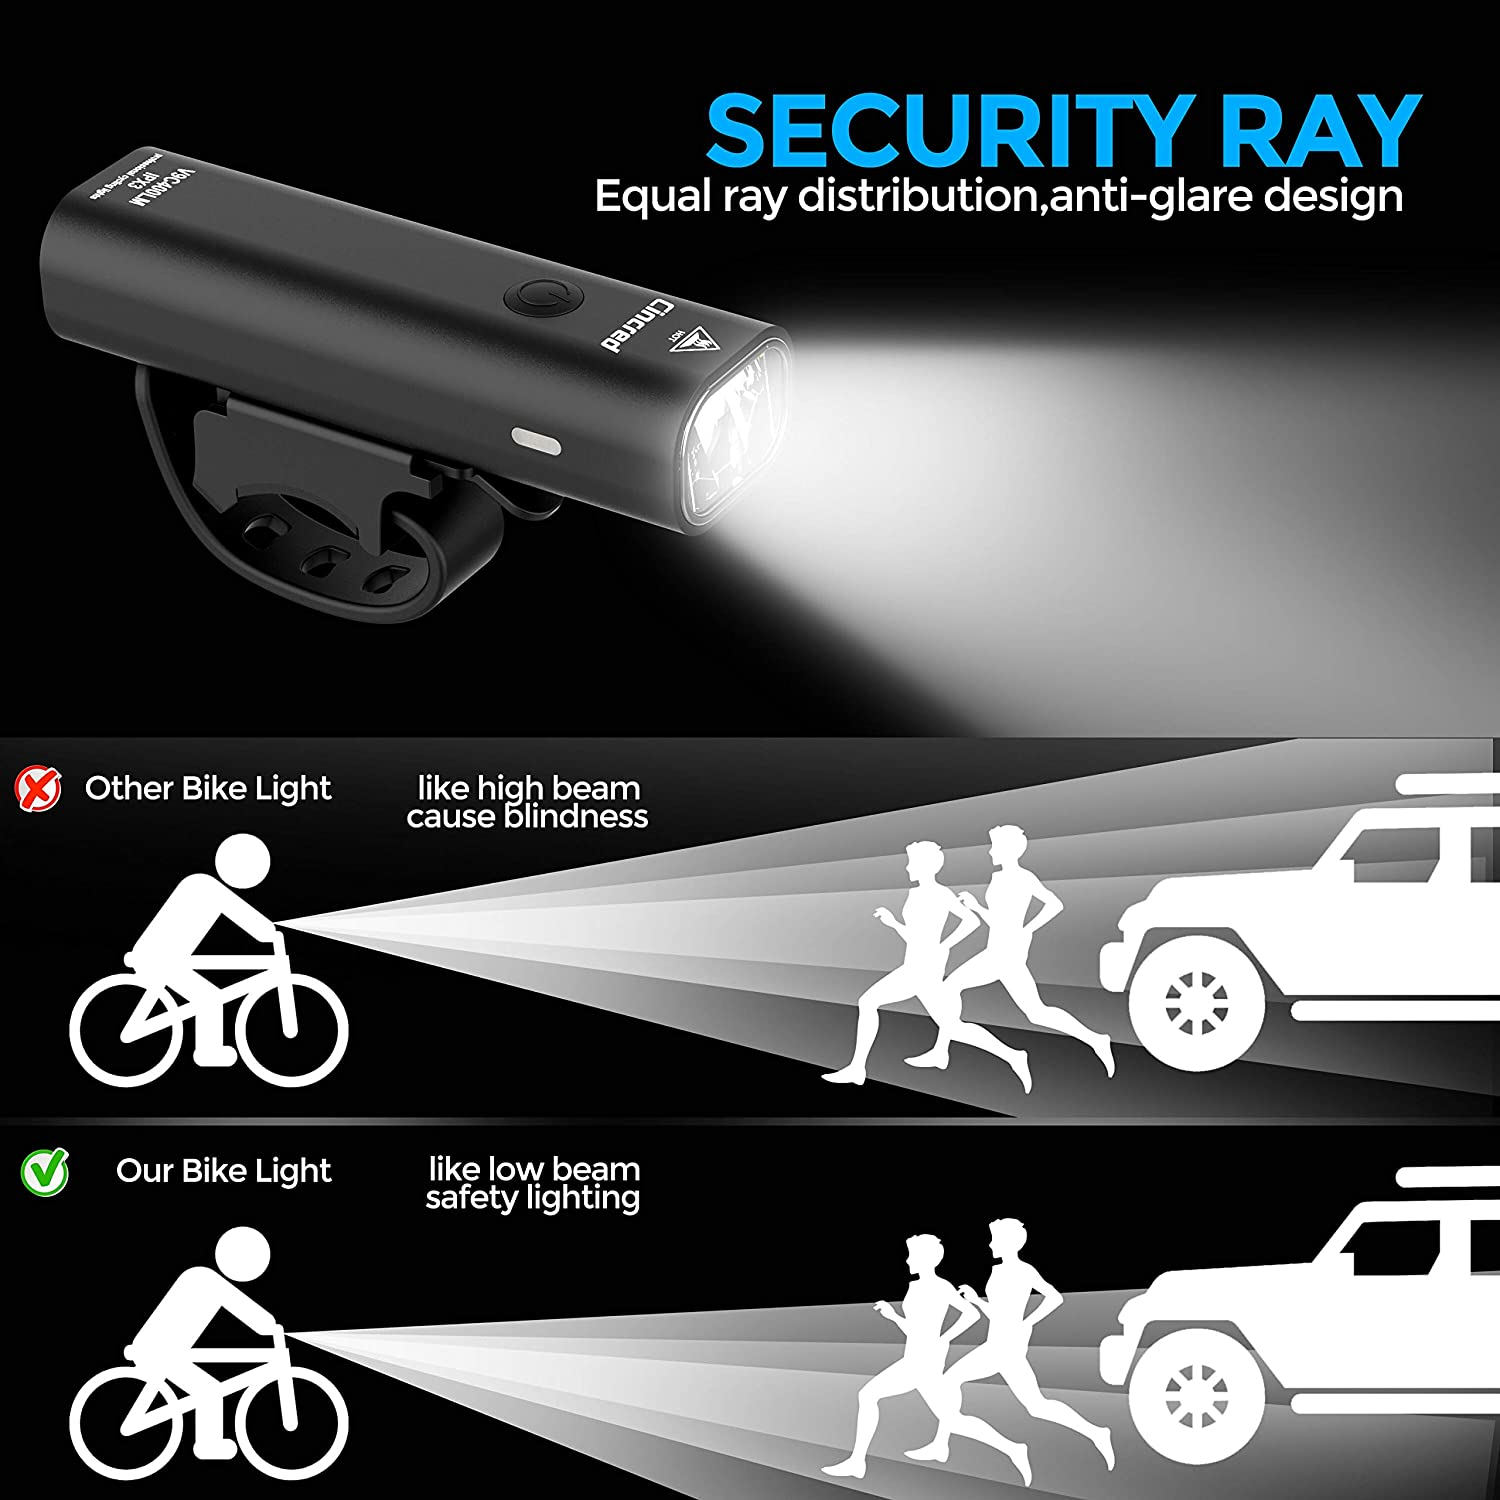 Runtime 8+ Hours 400 Lumen Super Bright Headlight Front Lights and Free Back Rear LED,4 Light Mode Fits All Bicycles Updated 2019 Version USB Rechargeable Bike Light Set Road Mountain Heyday Goods